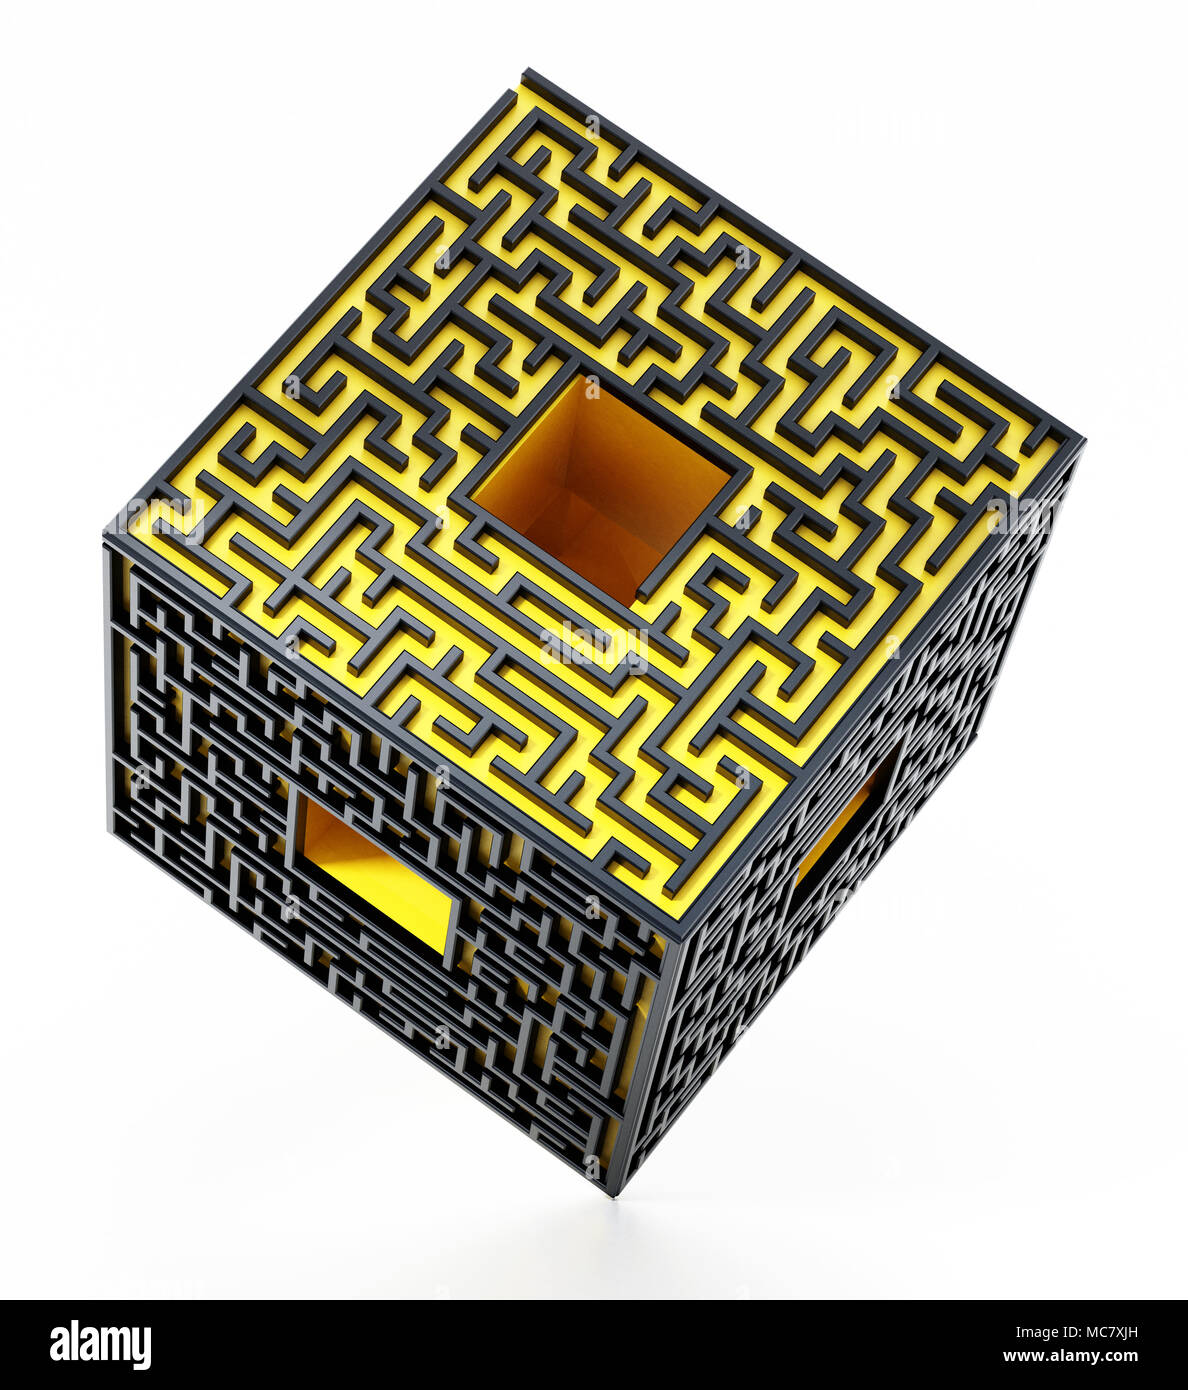 3D cube with labyrinth walls on the sides. 3D illustration. - Stock Image